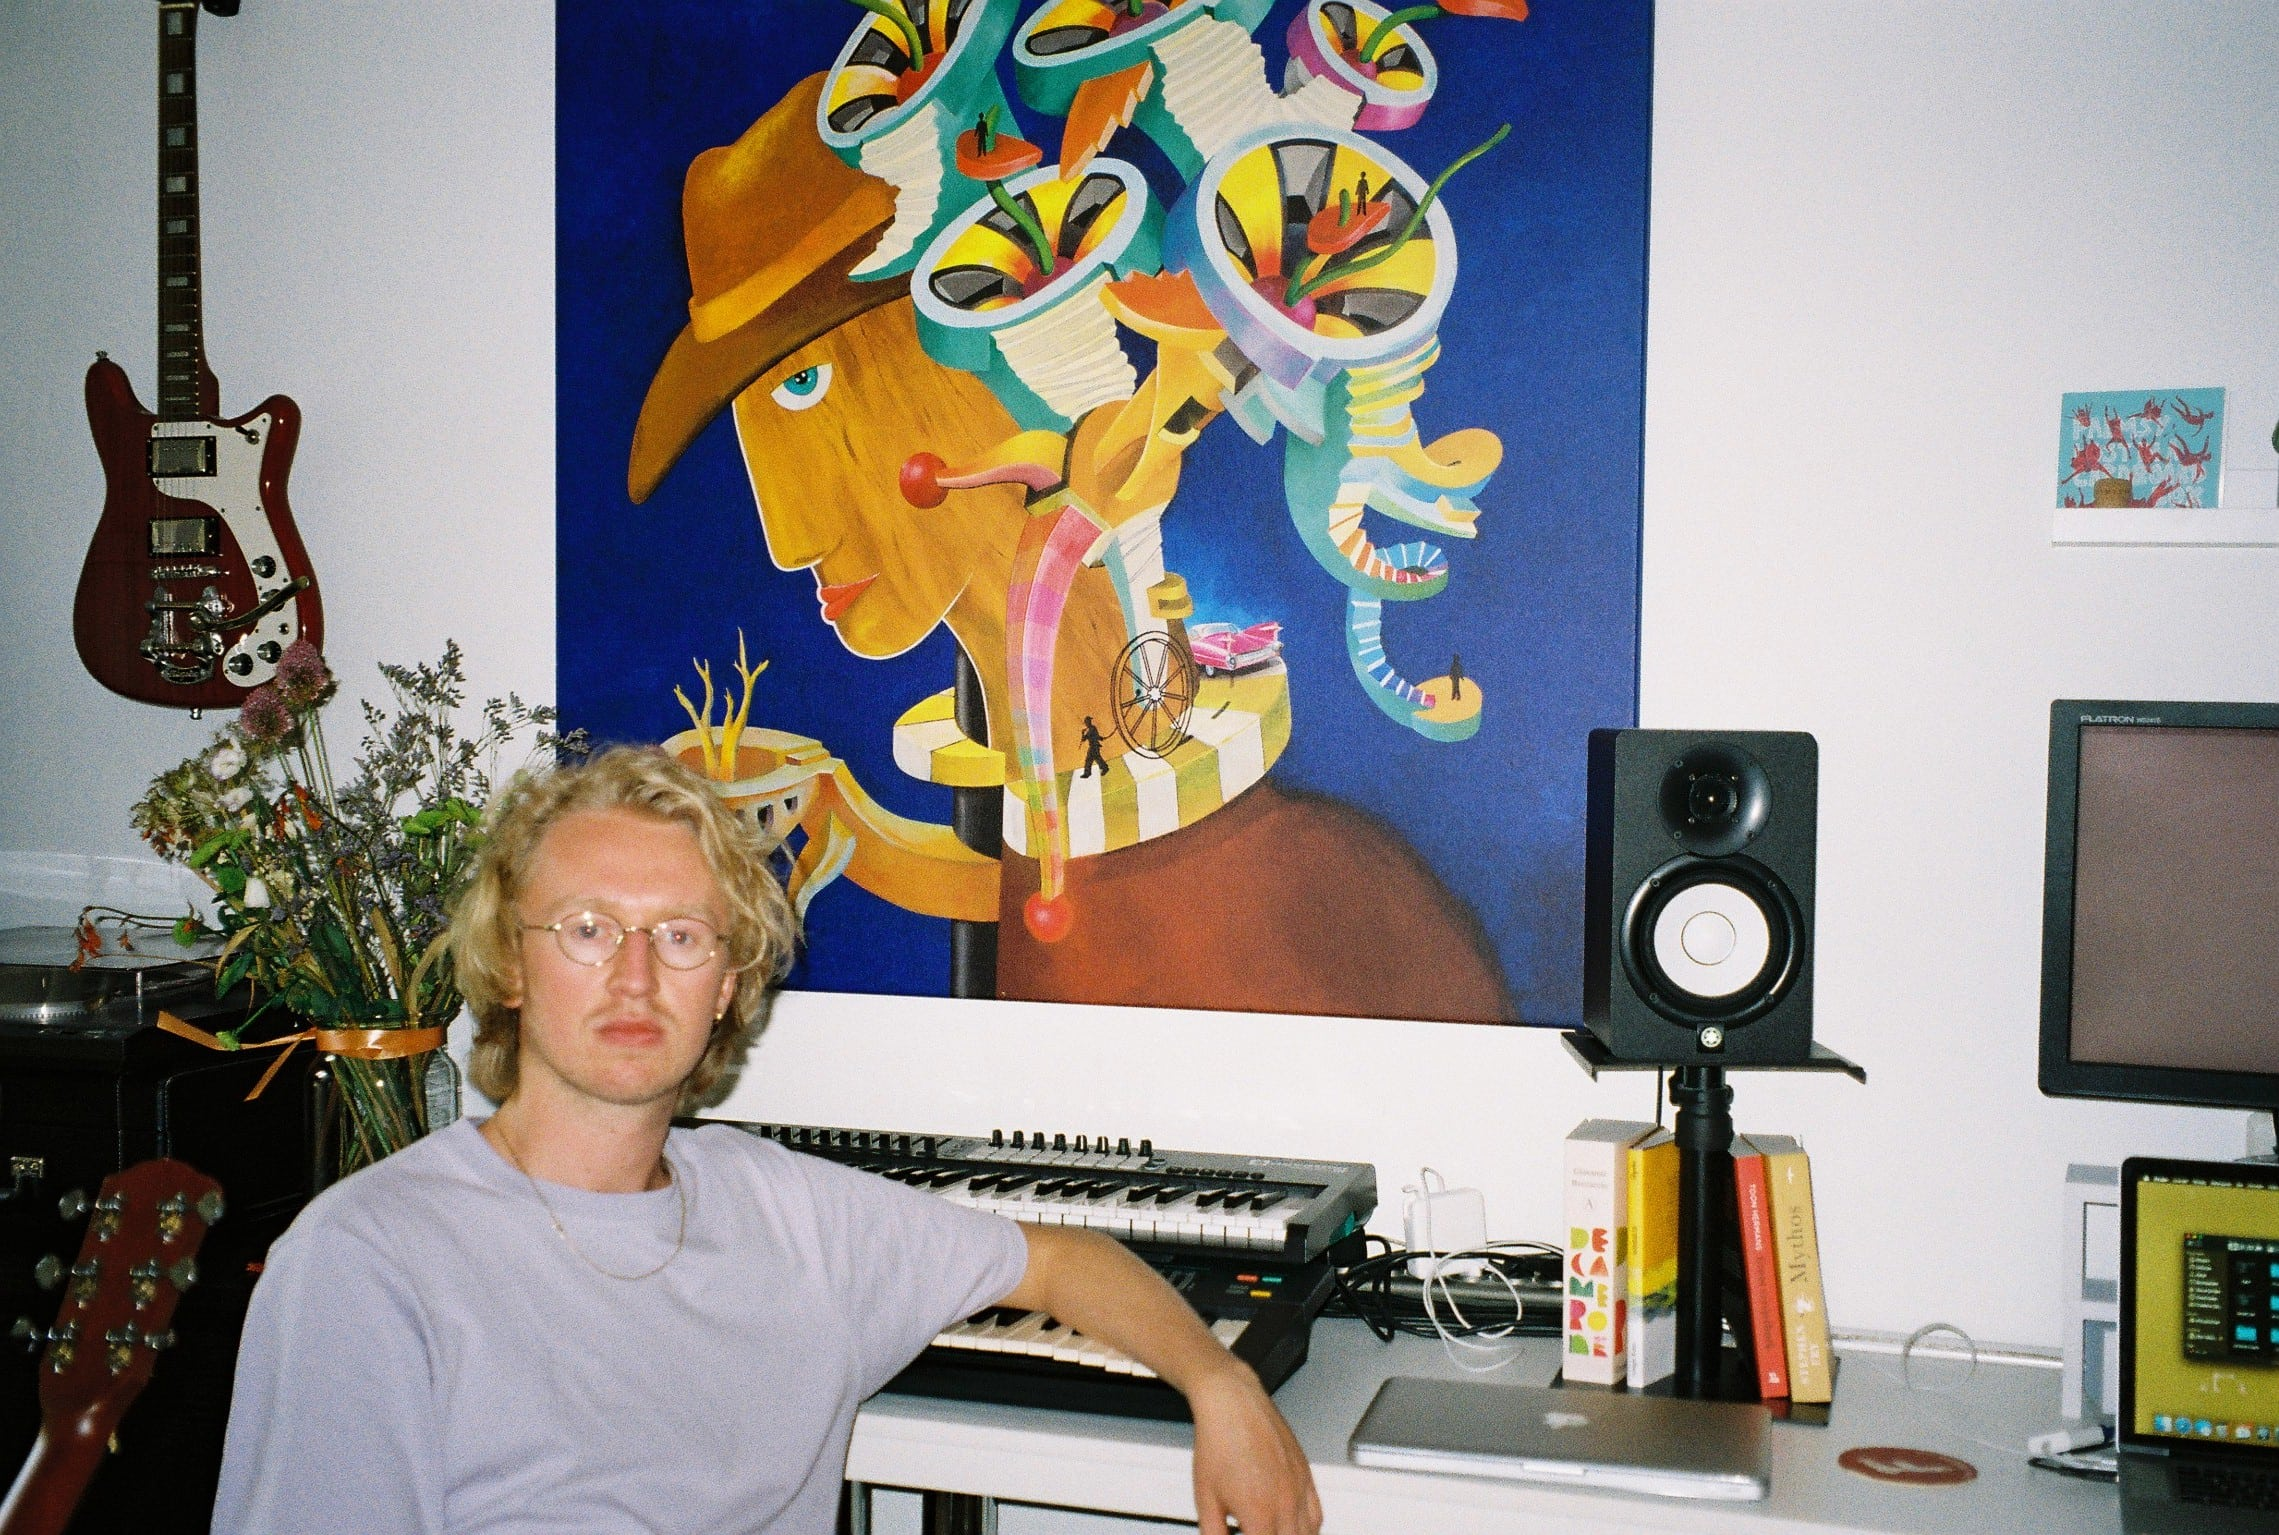 Gilles van Wees in his homestudio, with a painting from his dad